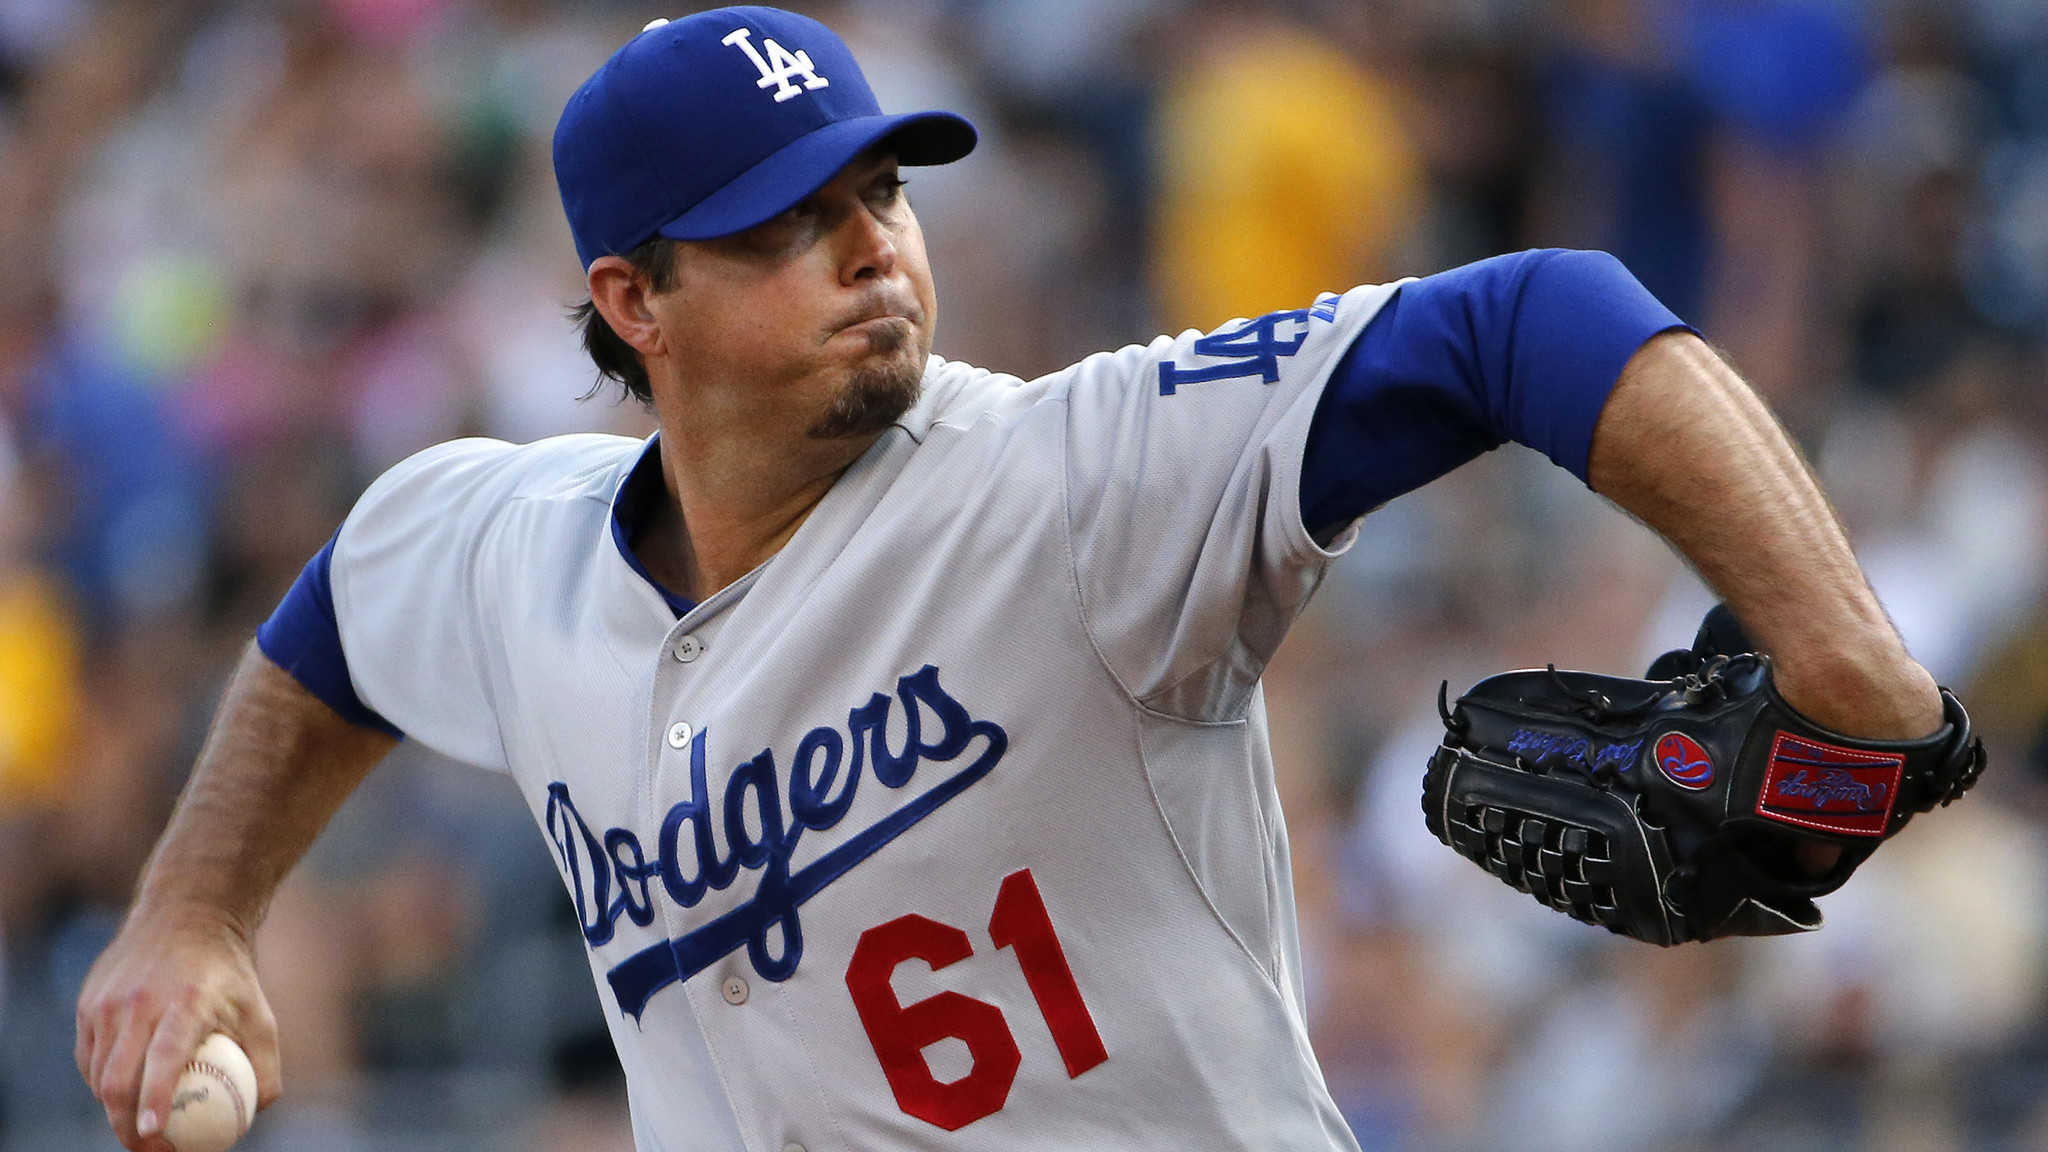 Dreadful pitching sinks Dodgers at Pittsburgh, 12-7